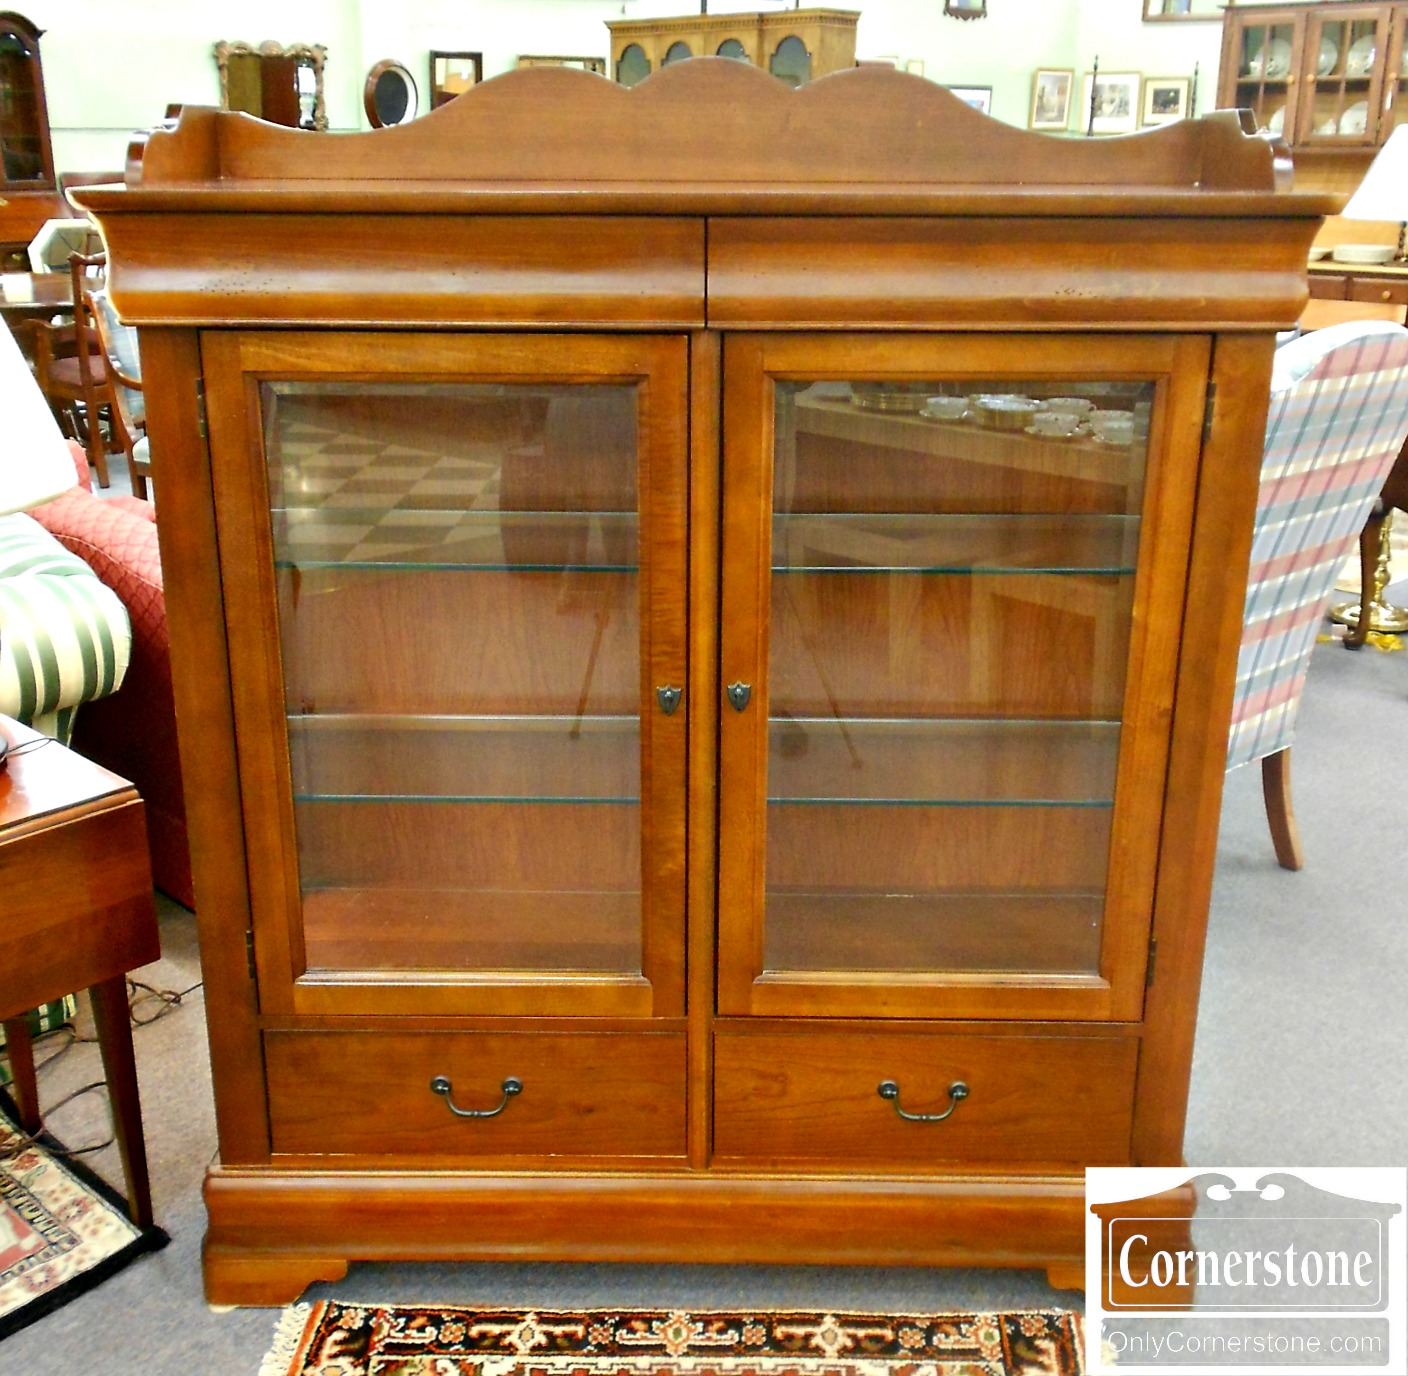 5666-455 Basset Casual Cabinet